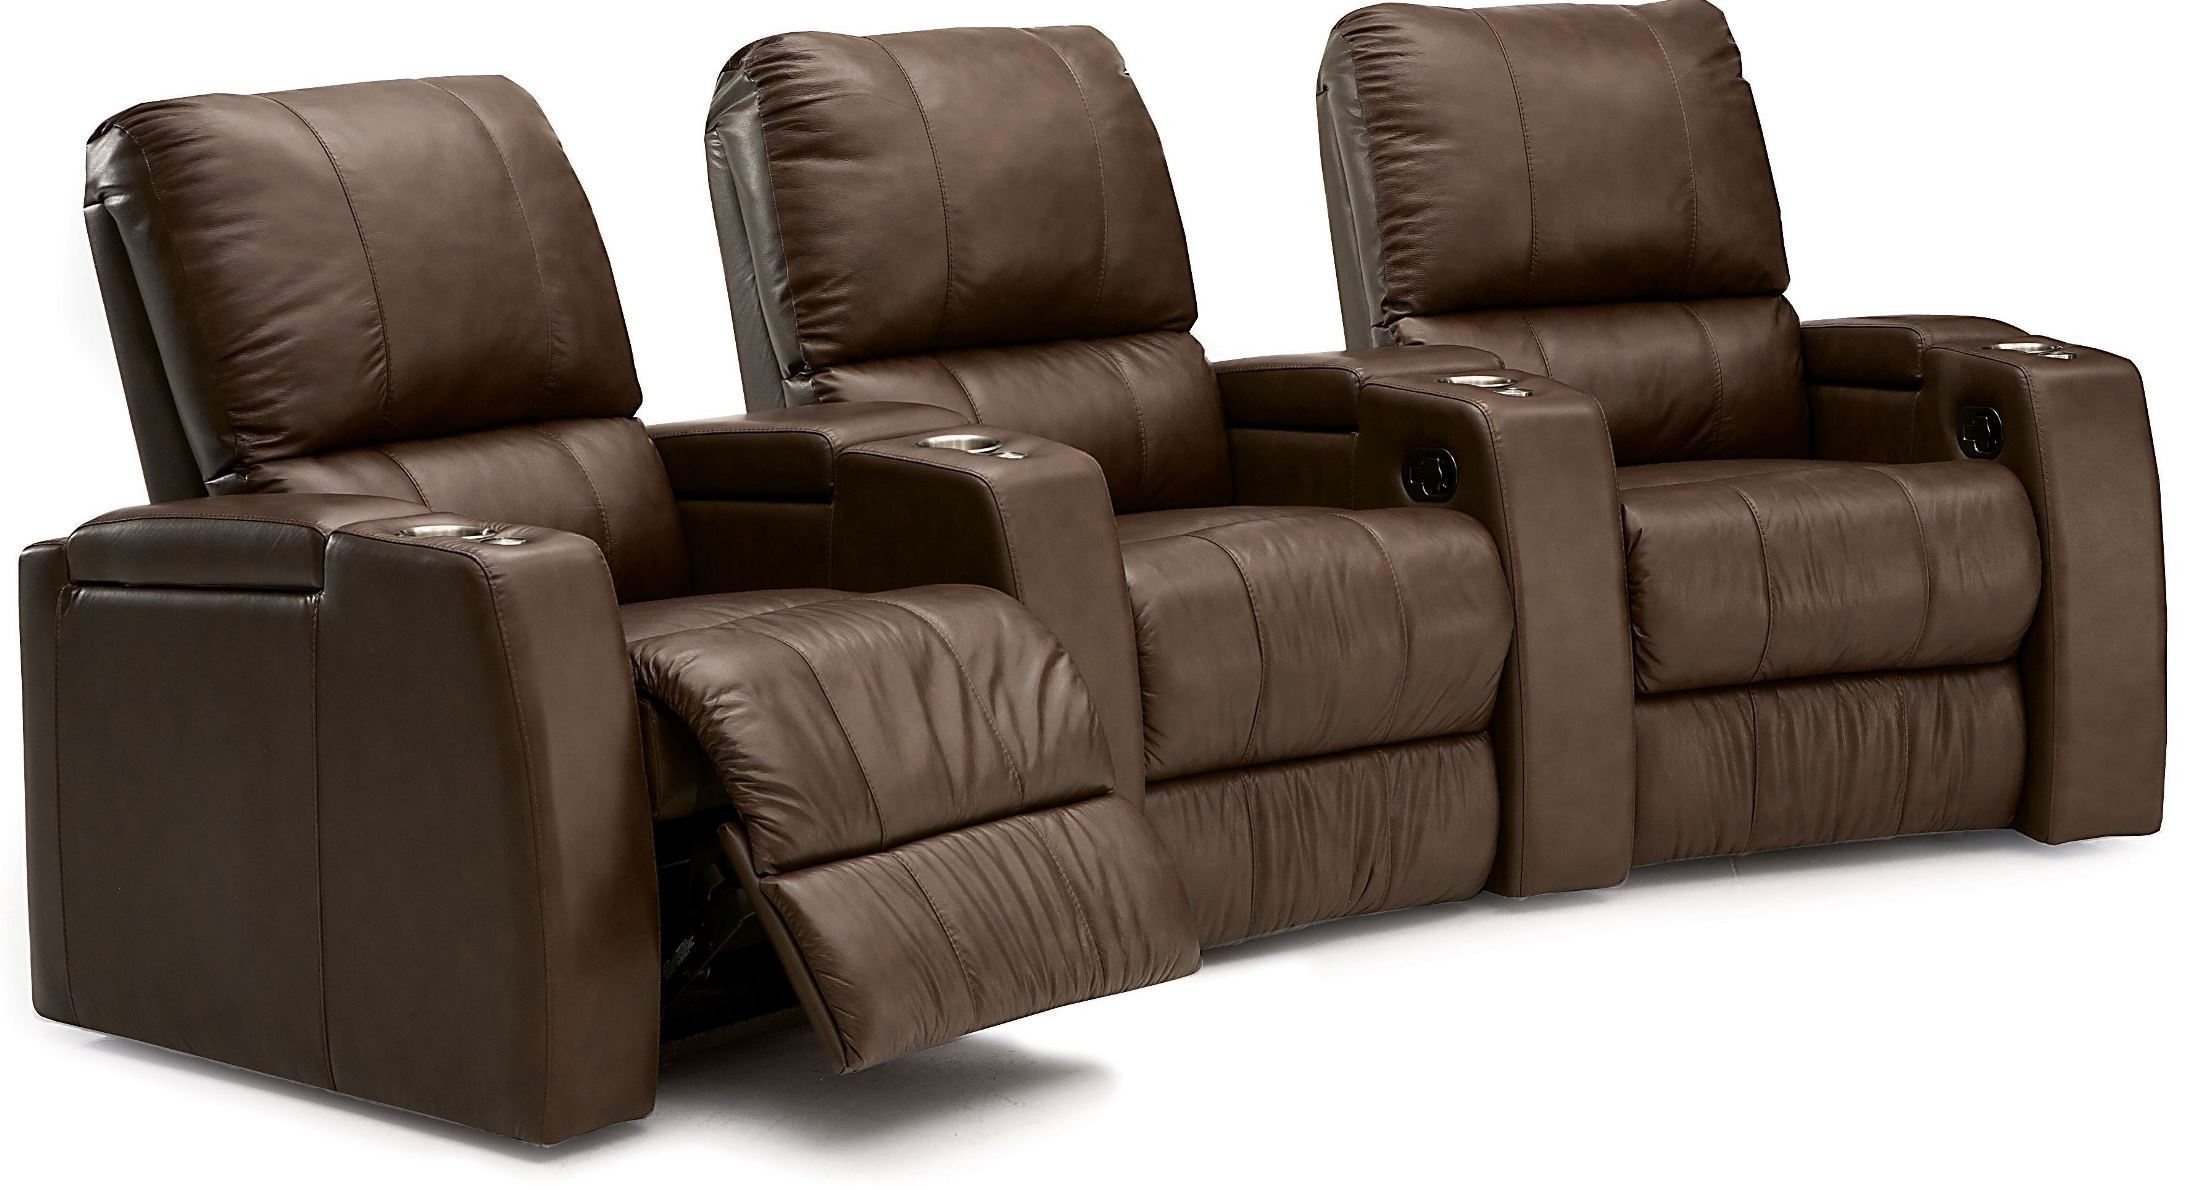 Playback Leather Home Theatre Seating Psr 41403 Leather Palliser